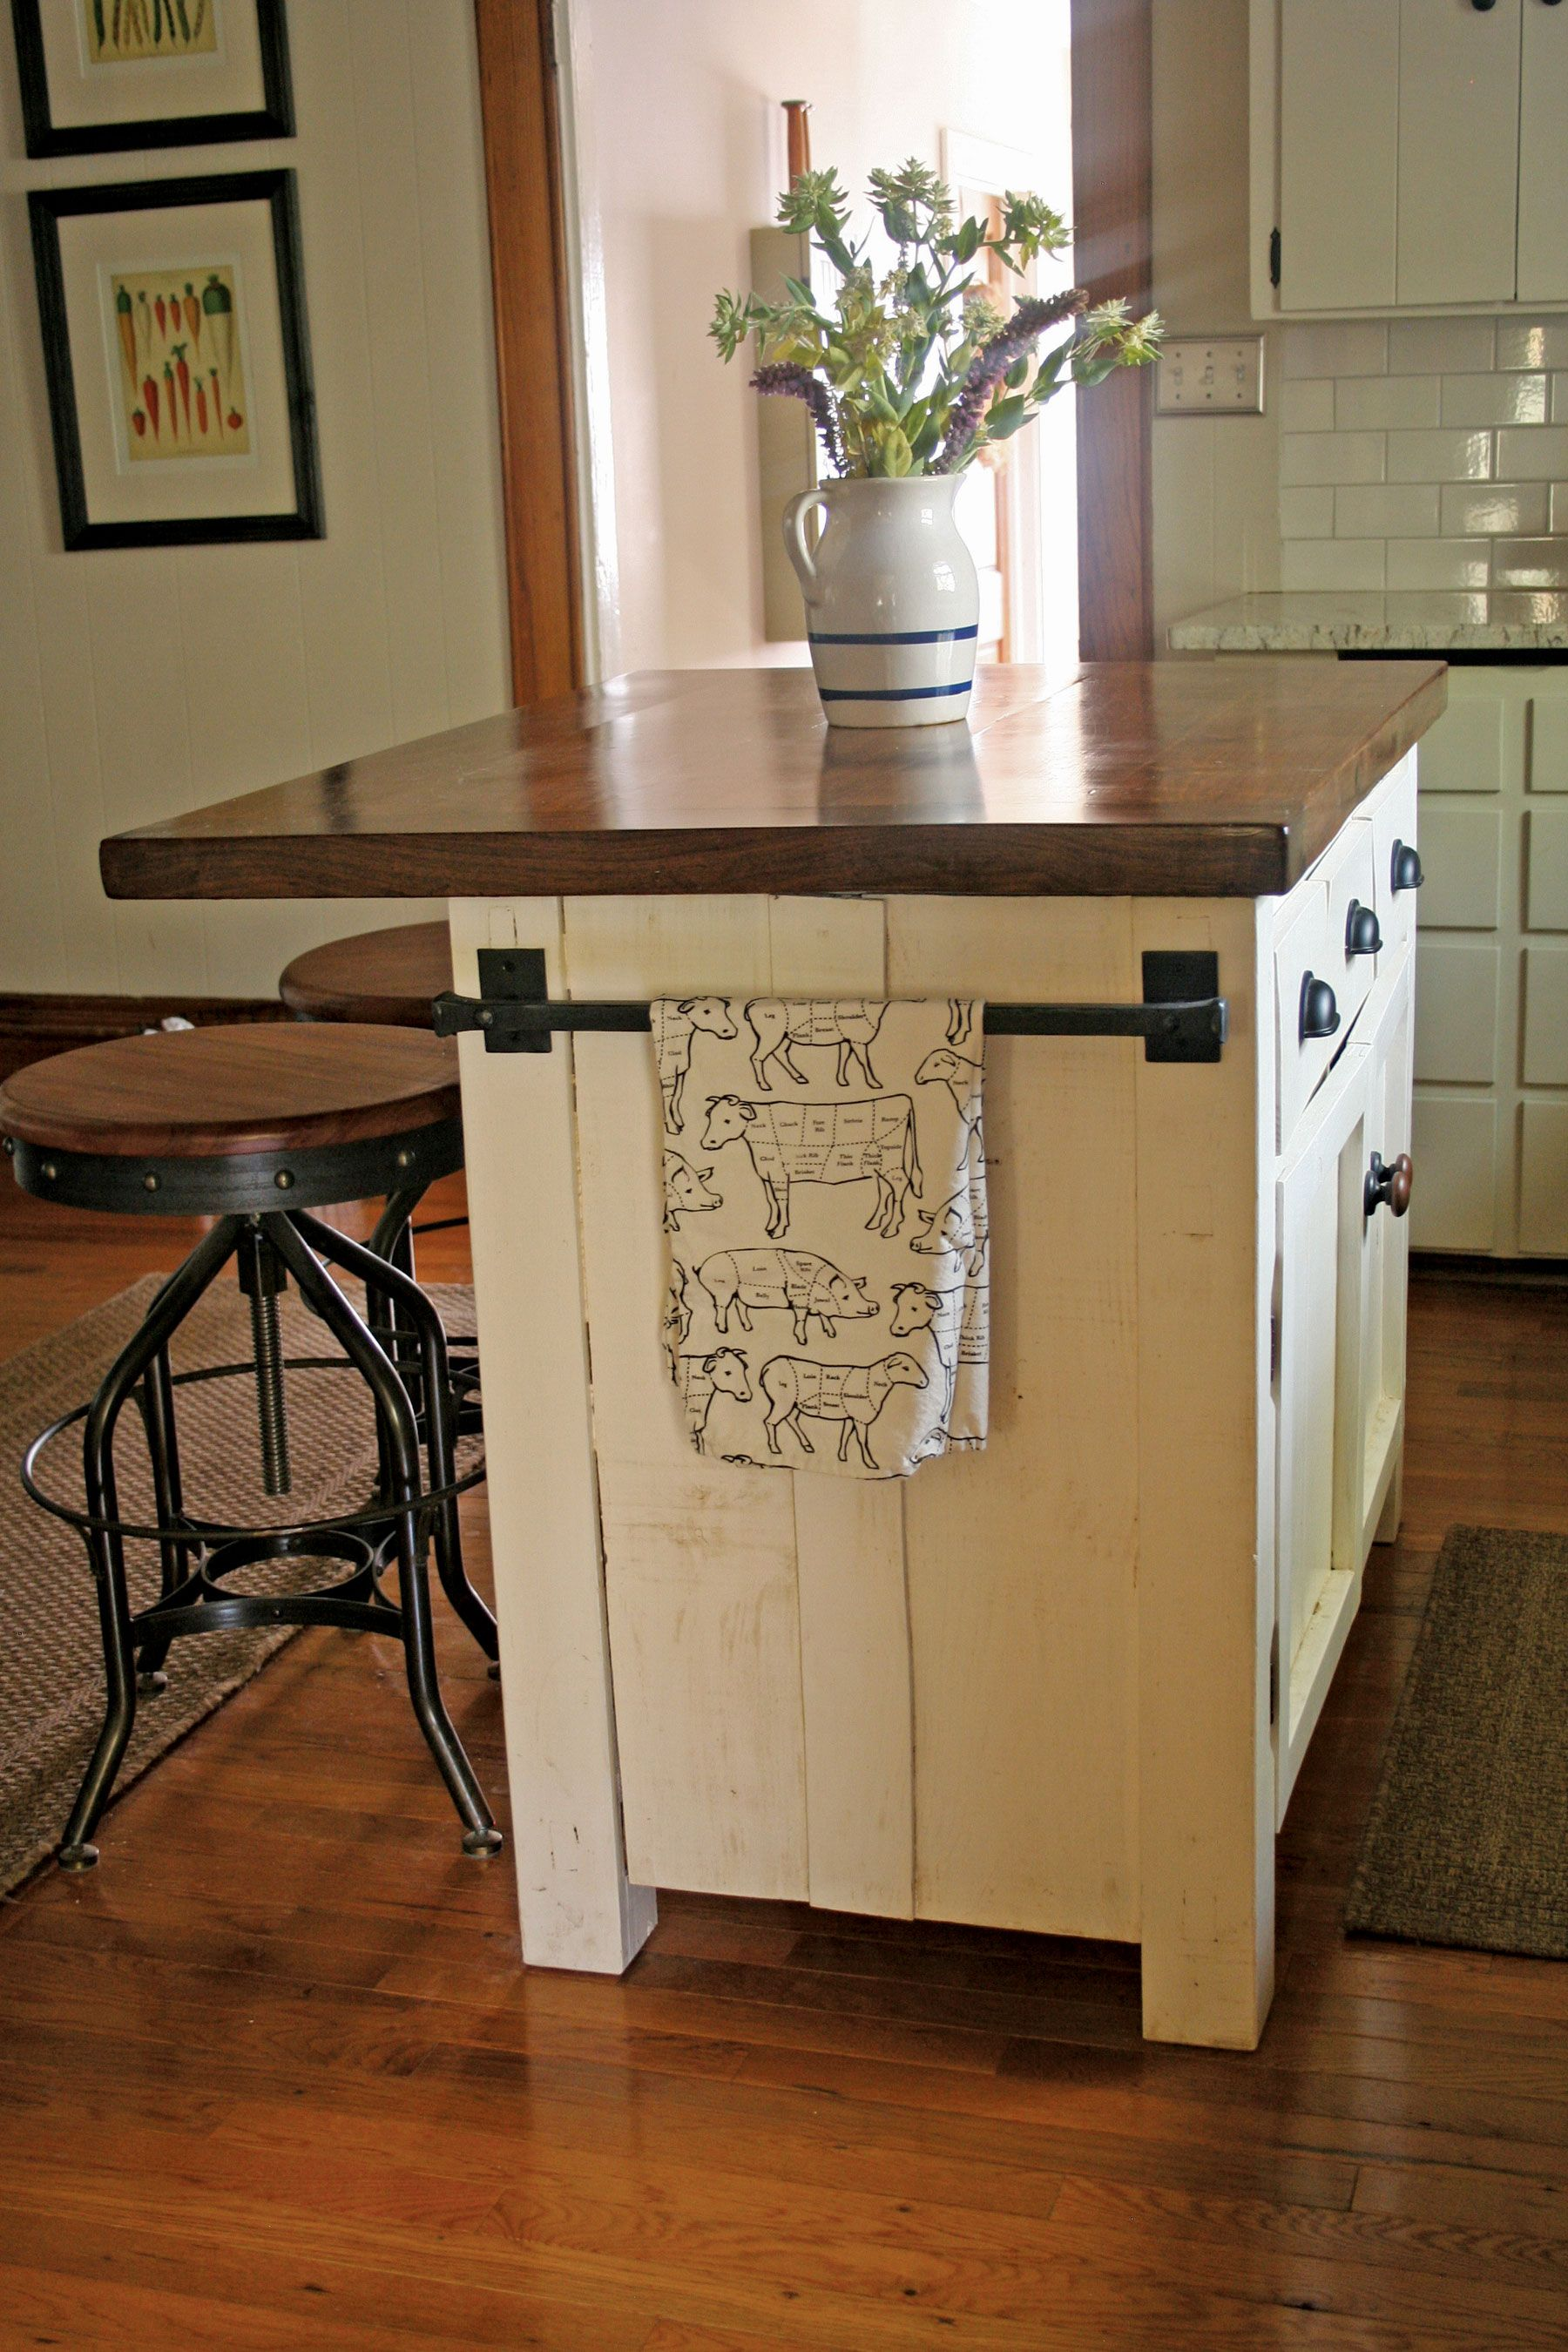 Diy Kitchen Island Ideas kitchen diy island bar basic breakfast base | eiforces with diy